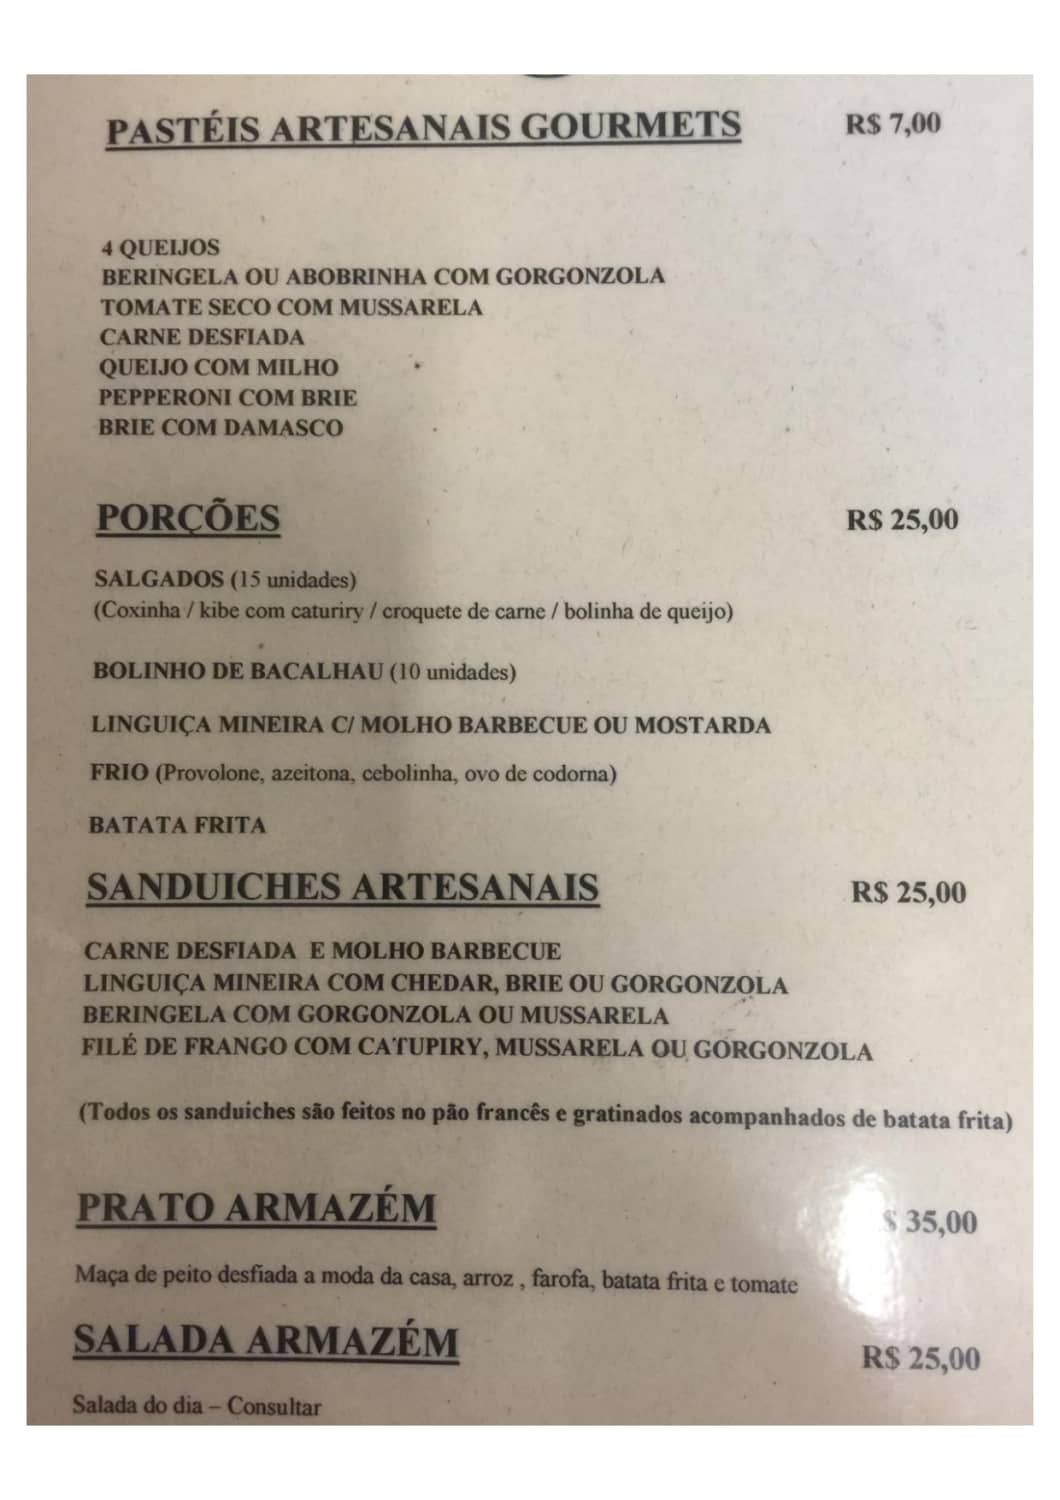 Menu do restaurante Armazém 102 - Página 1